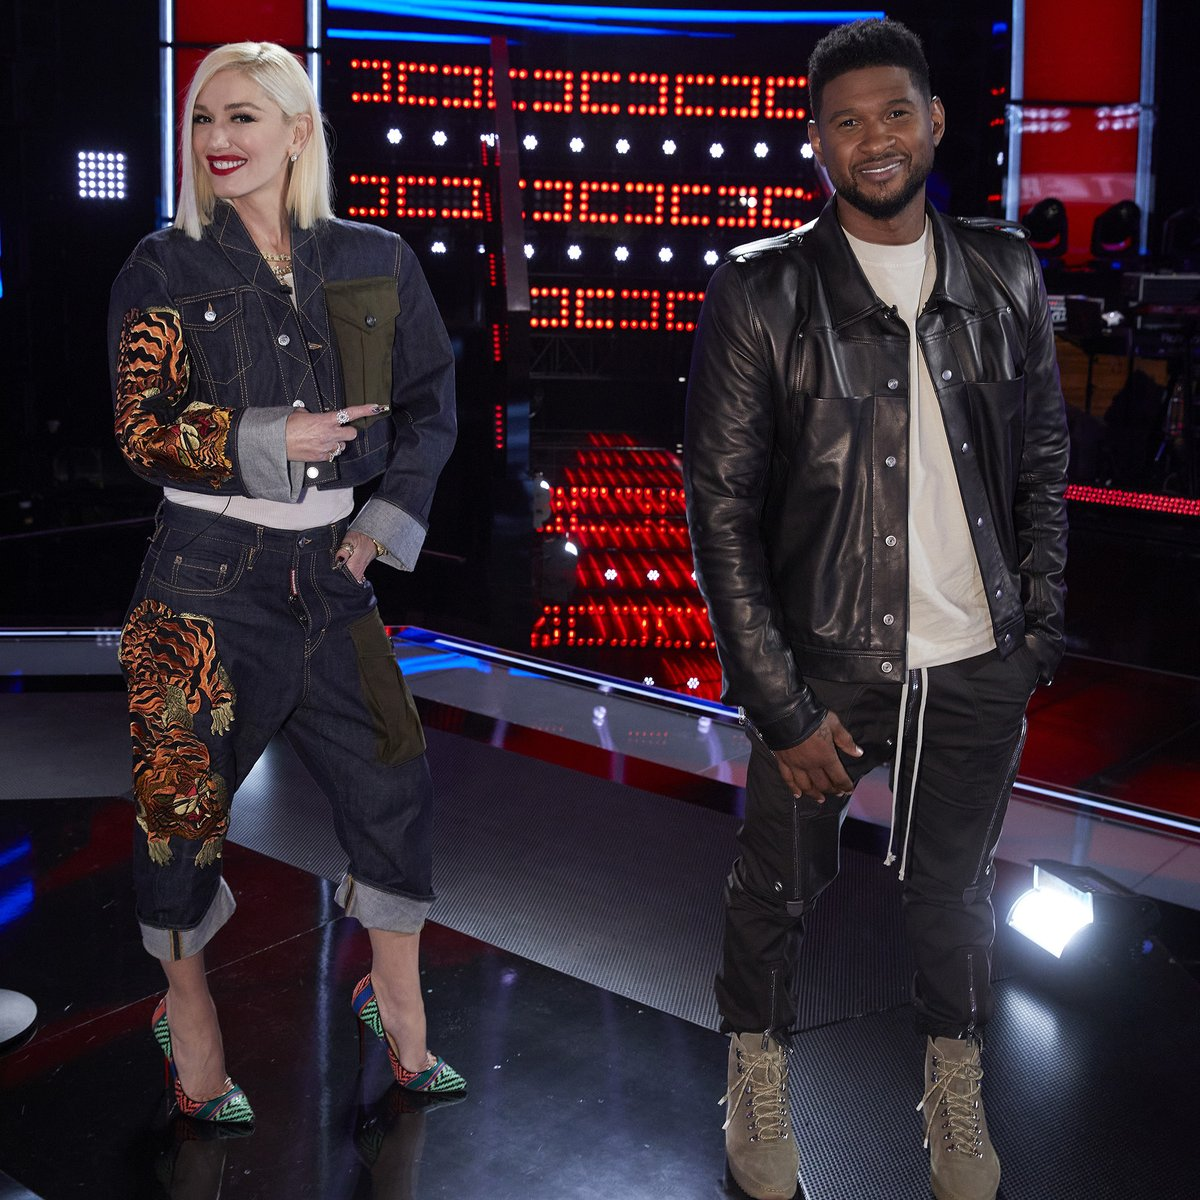 How do we get @Usher and @GwenStefani to be our dance partners? 🕺